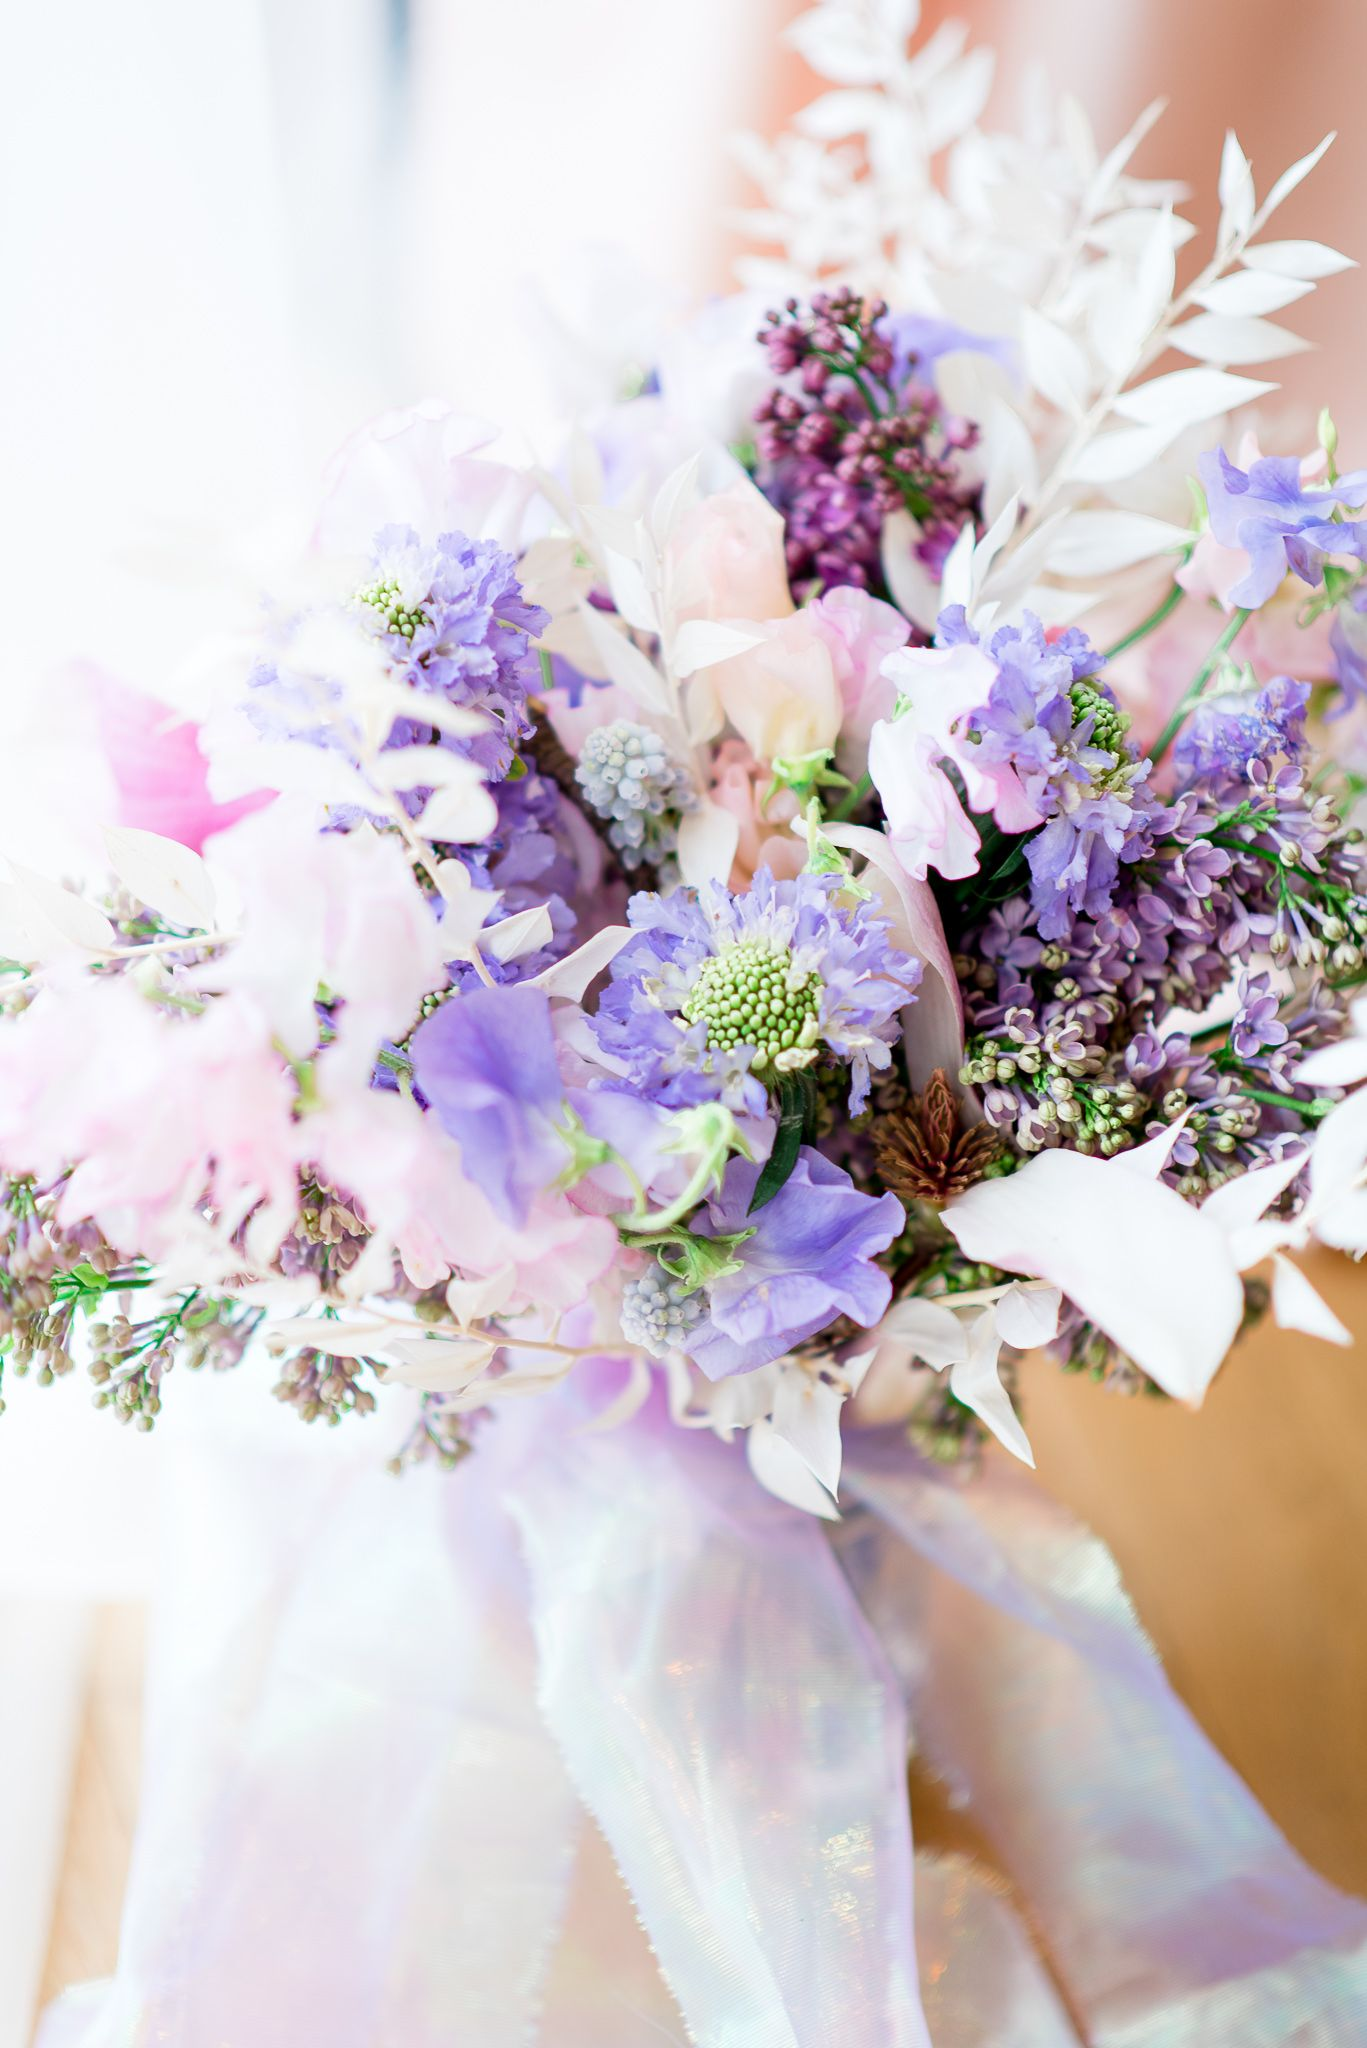 colorful wedding bouquet with purple lilacs and pink sweet pea flowers for a spring wedding bouquet